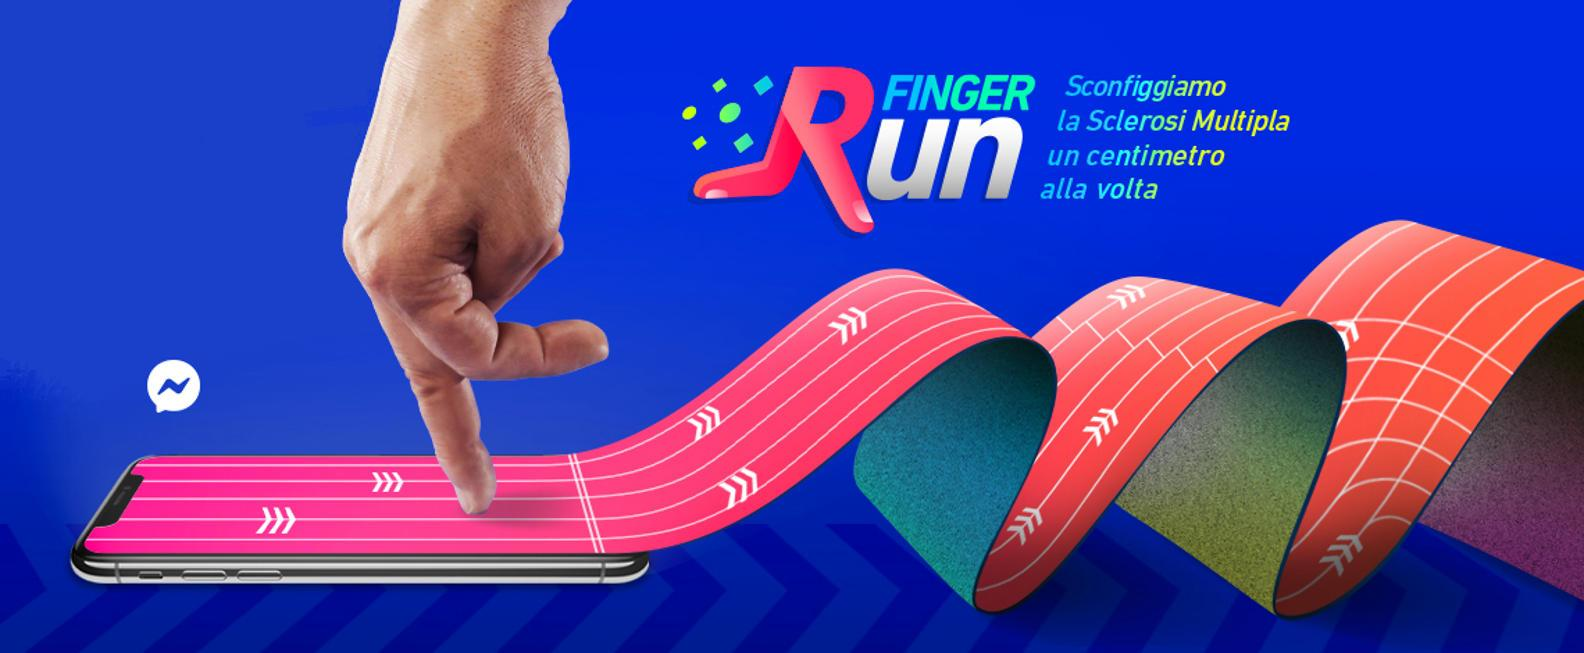 Finger Run